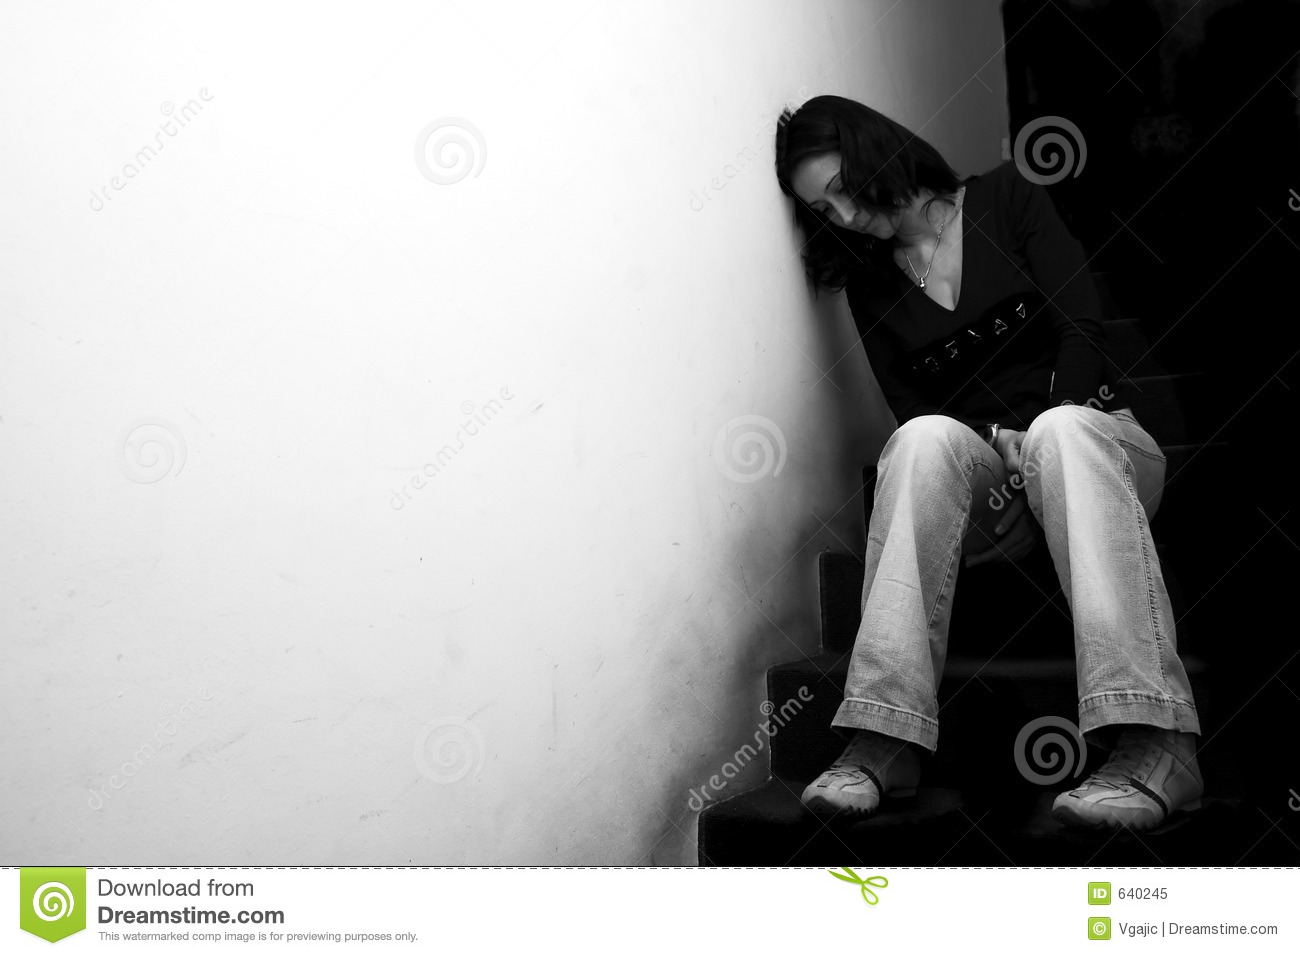 Lonely Girl Stock Image Image Of Contrast, Mental, Female - 640245-9029